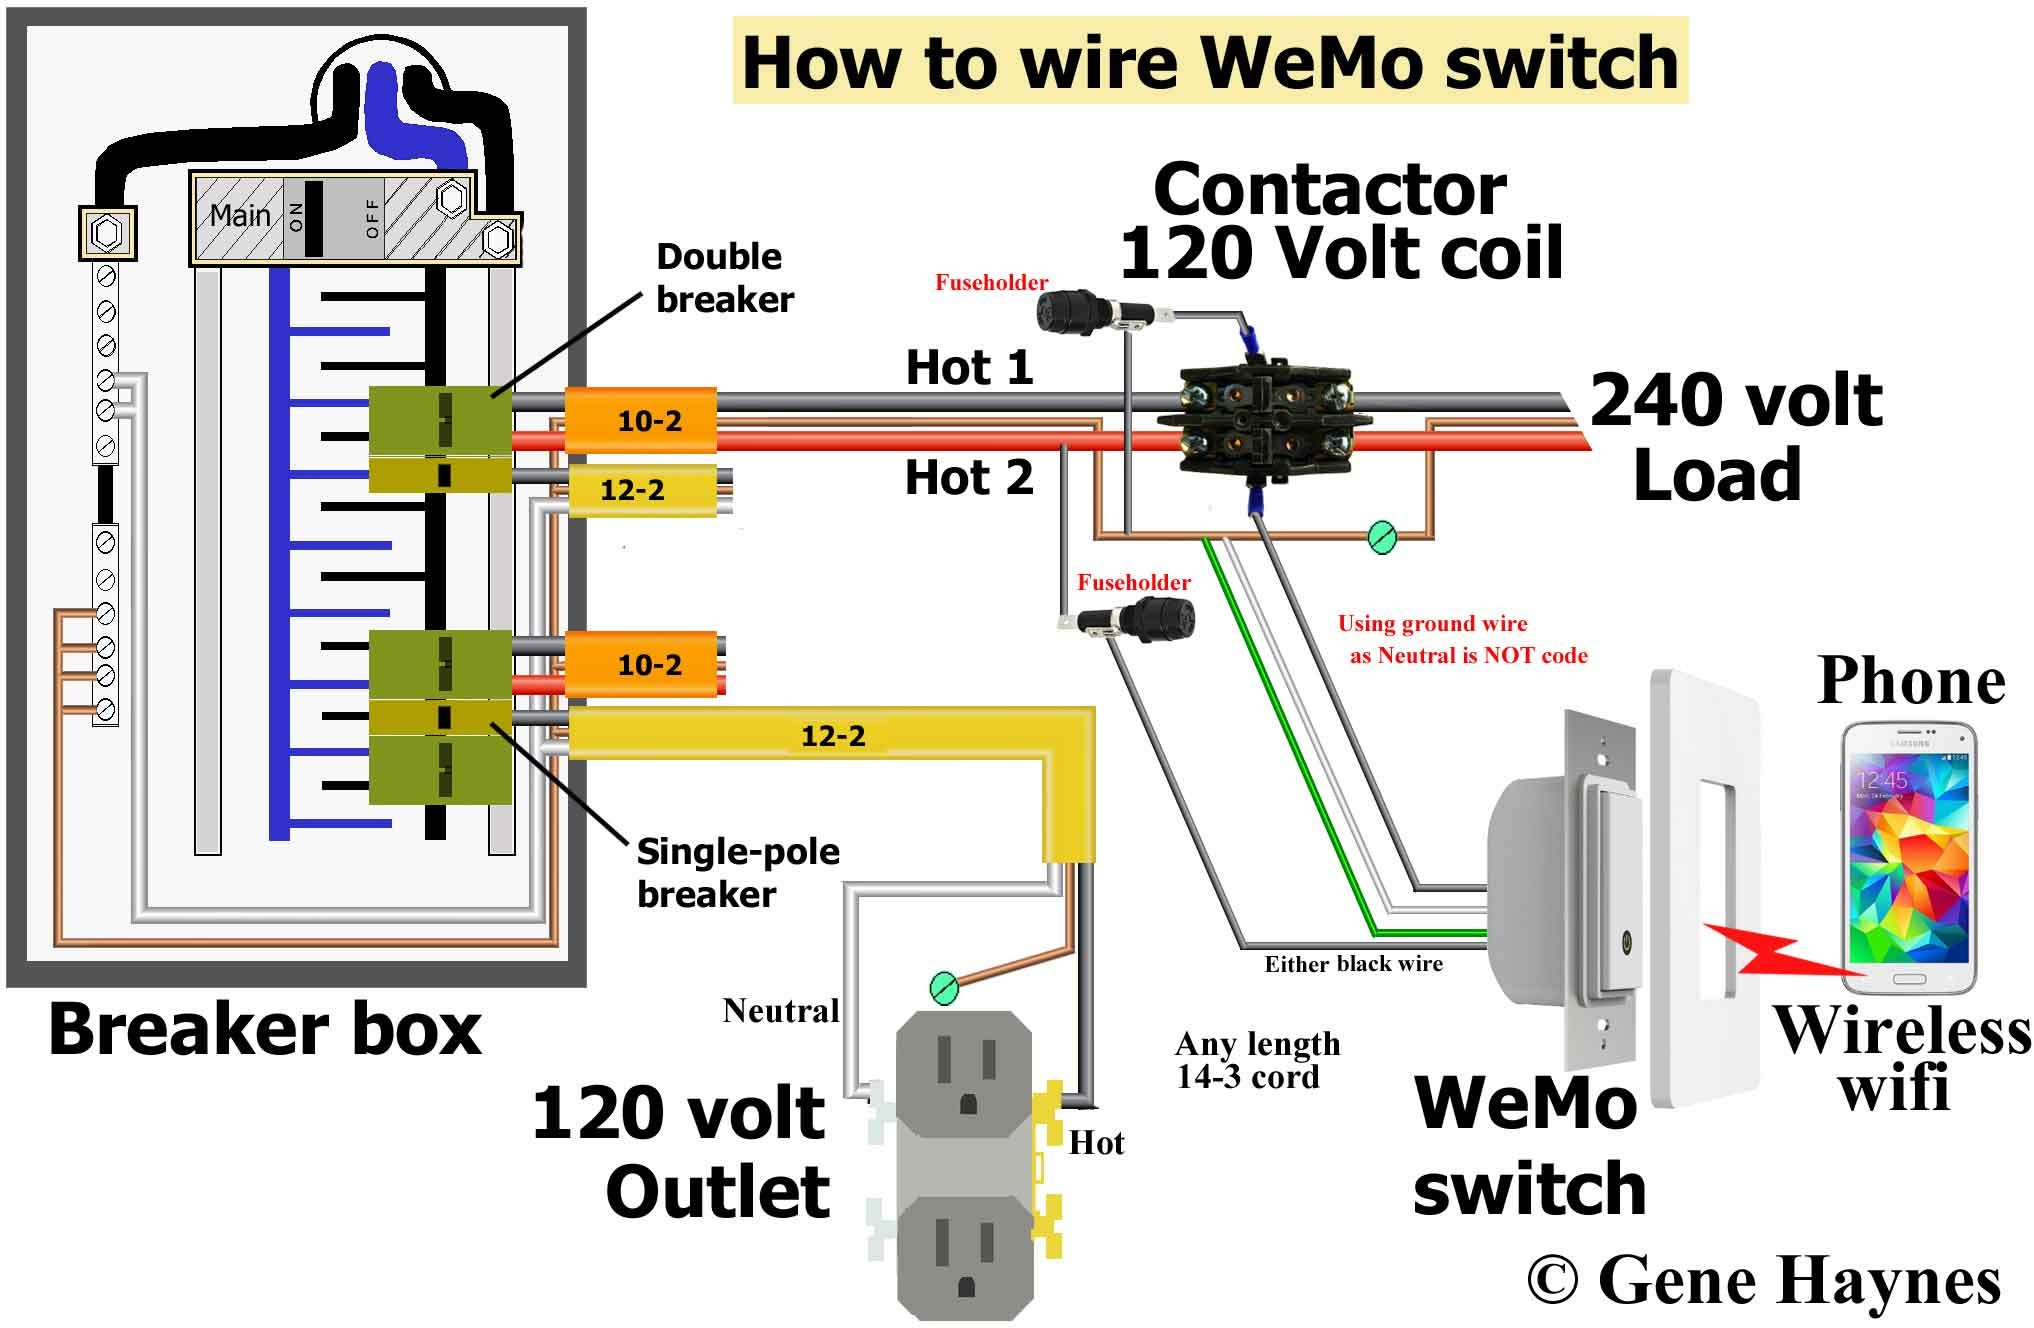 4 wire 220 volt wiring diagram unique wiring diagram image wiring a 220 air  compressor pressure